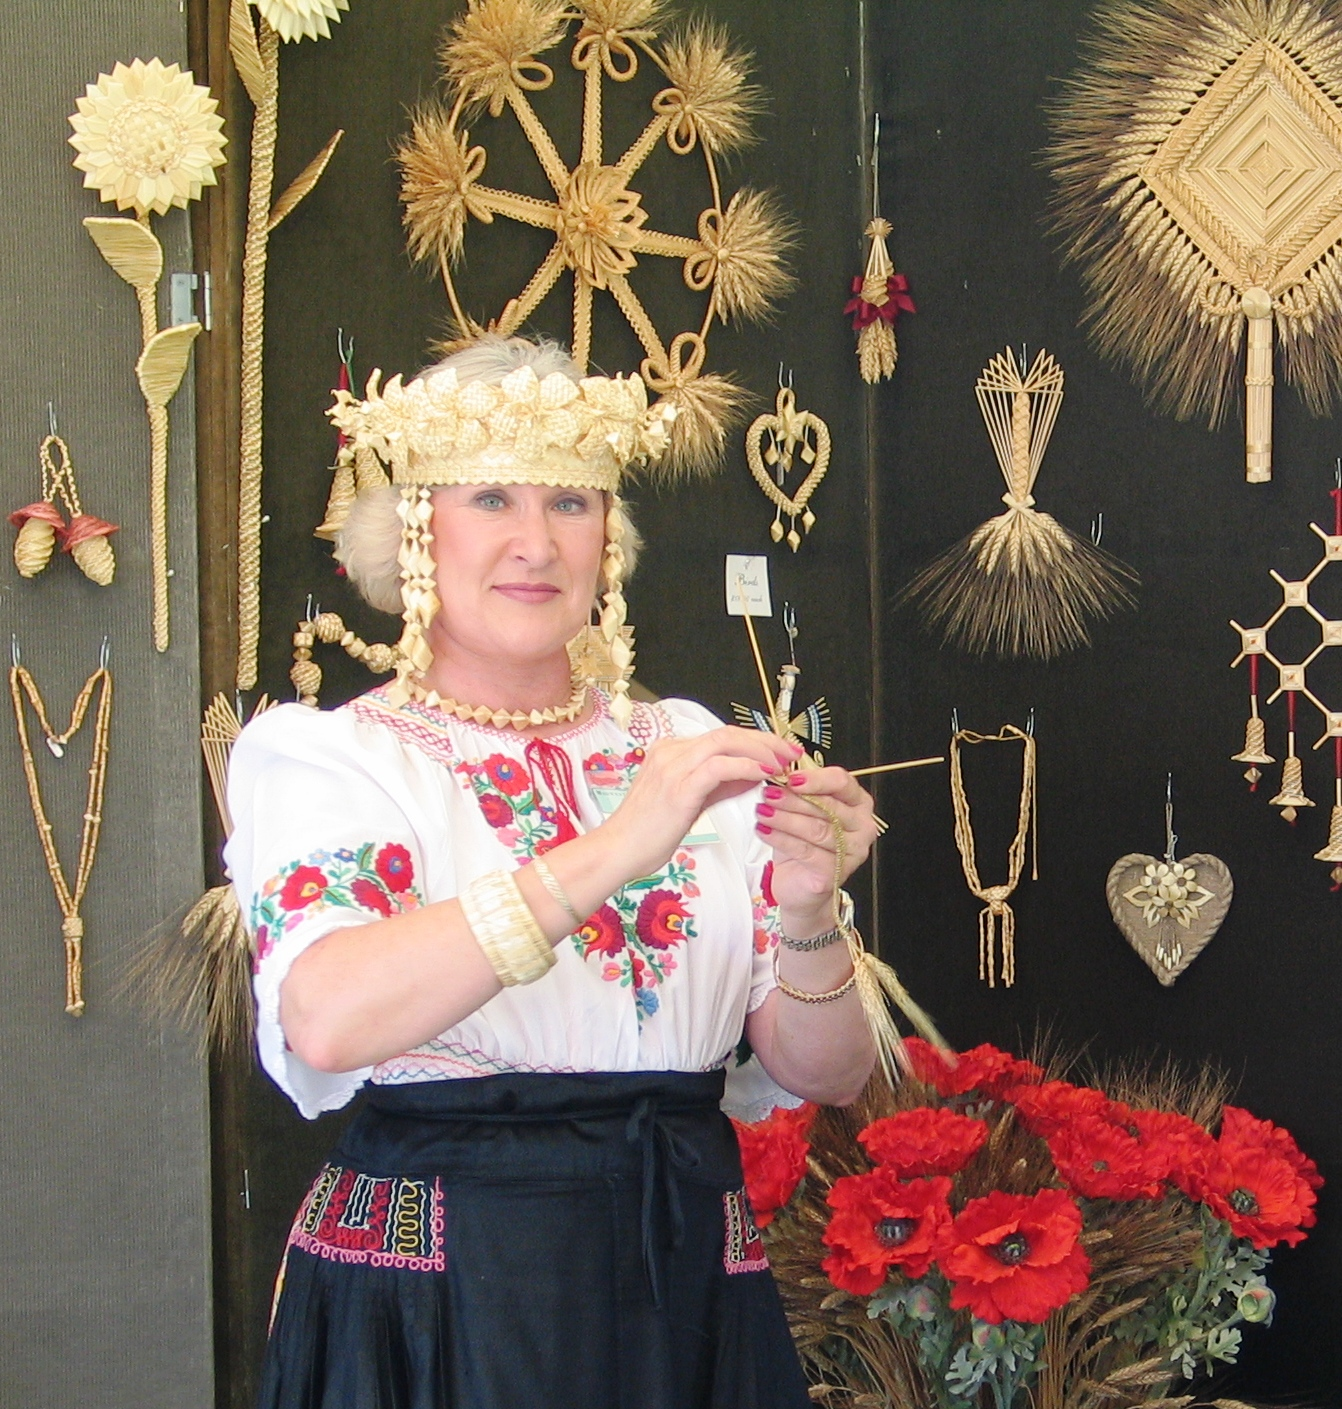 Sidonka Wadina of Lyons, WI shown with woven straw creations.